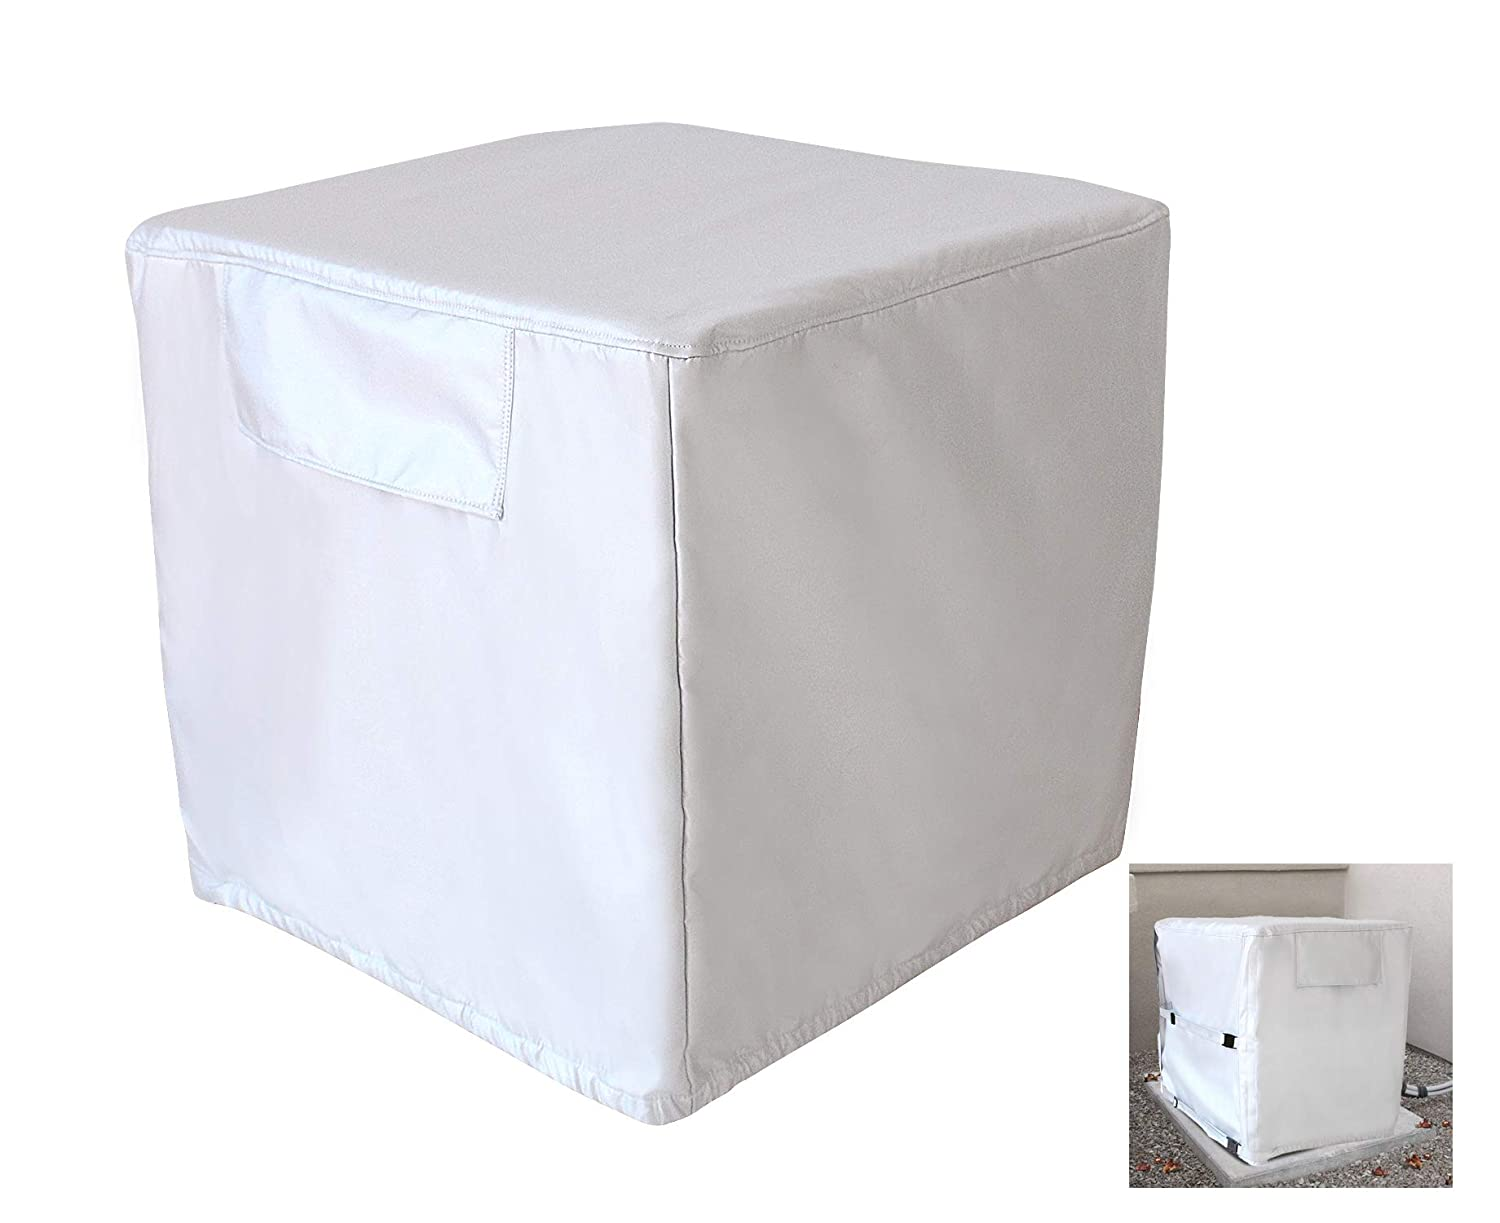 Air Conditioner Cover Water Resistant Fits 27 Width x 26 Depth x 28 Height Covered Mesh Vent Airflow 8 YR Warranty Heavy Duty Waterproof Durable Winter Outdoor AKEfit